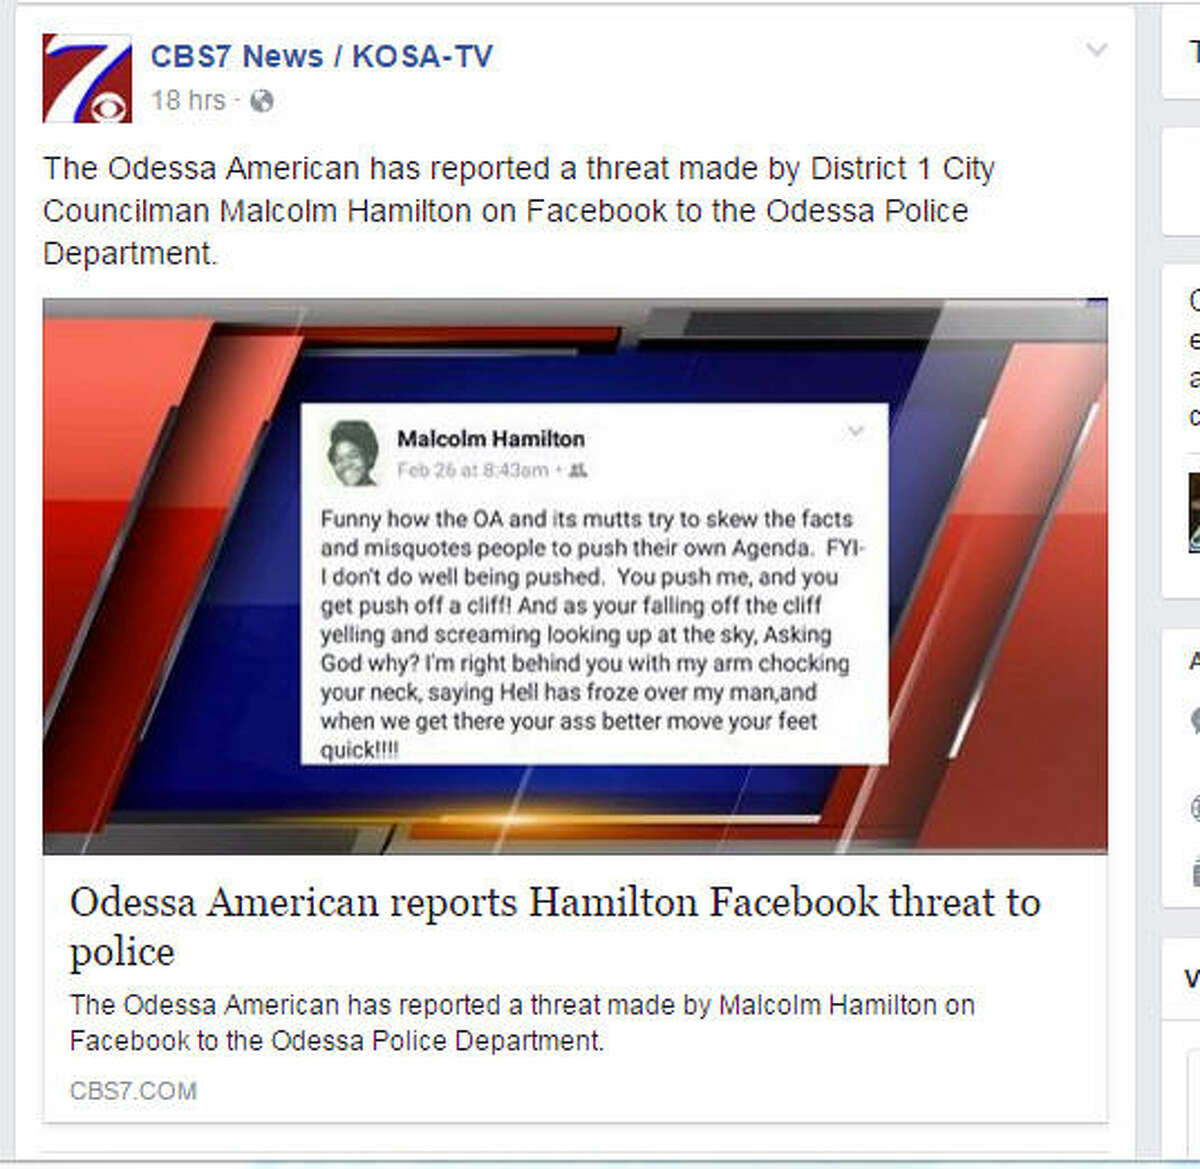 Odessa City Councilman Malcolm Hamilton allegedly posted a private Facebook message that appeared to threaten the Odessa American, leading the newspaper to report the threat to local police. (Facebook/via CBS7.)